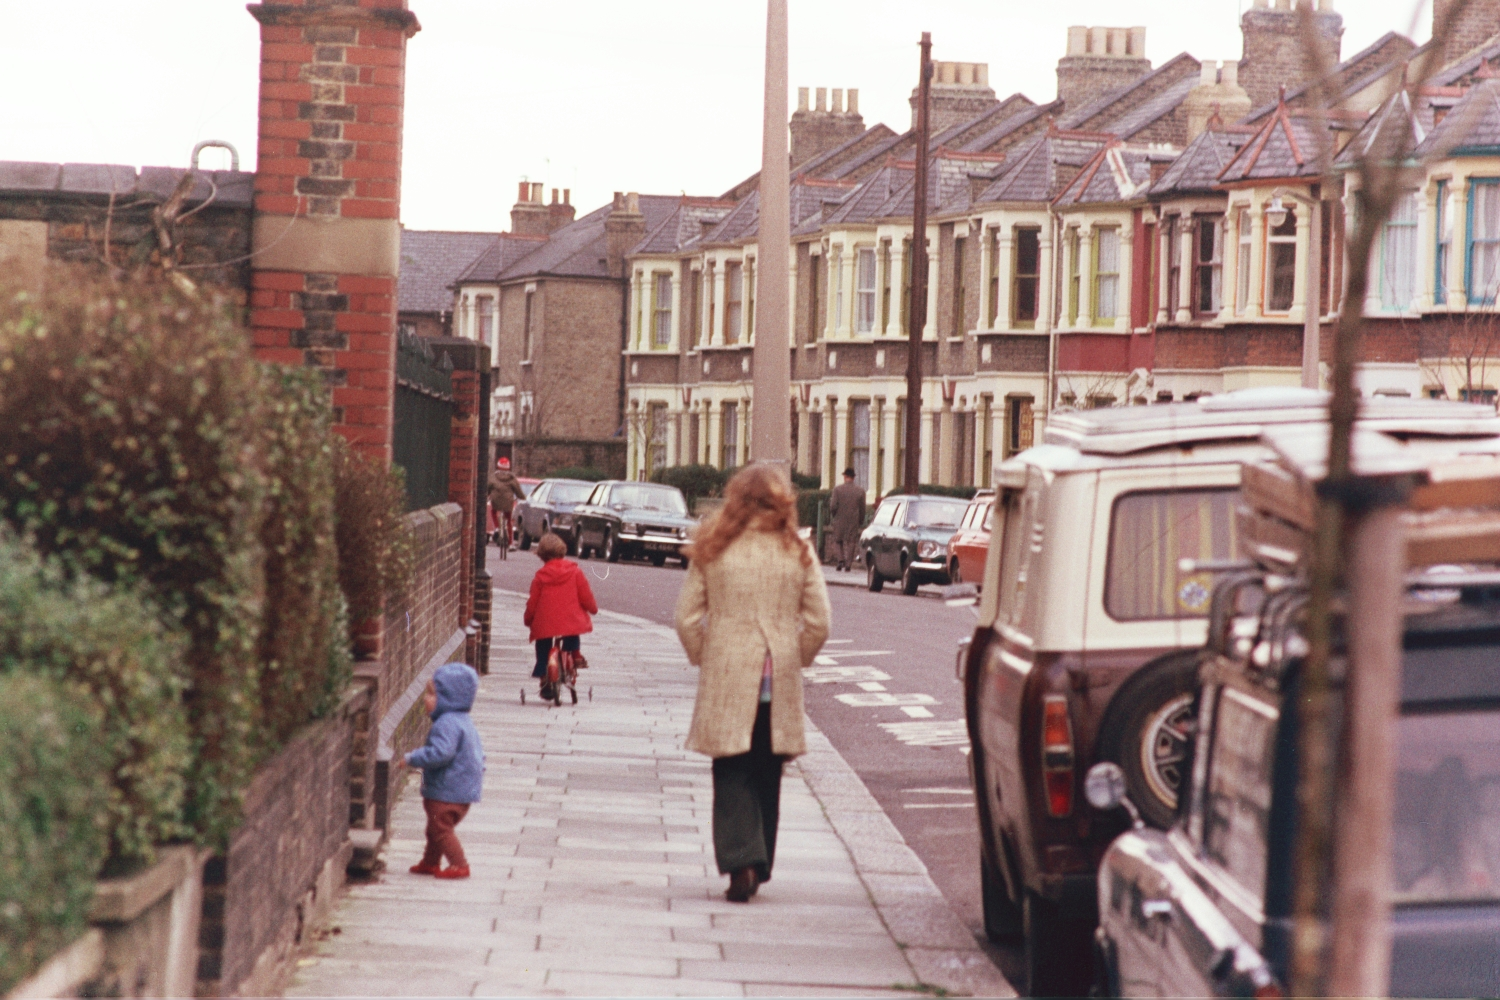 Lori Shearer, Matt Shearer, Russel Shearer, in Leyton, London, in 1970s